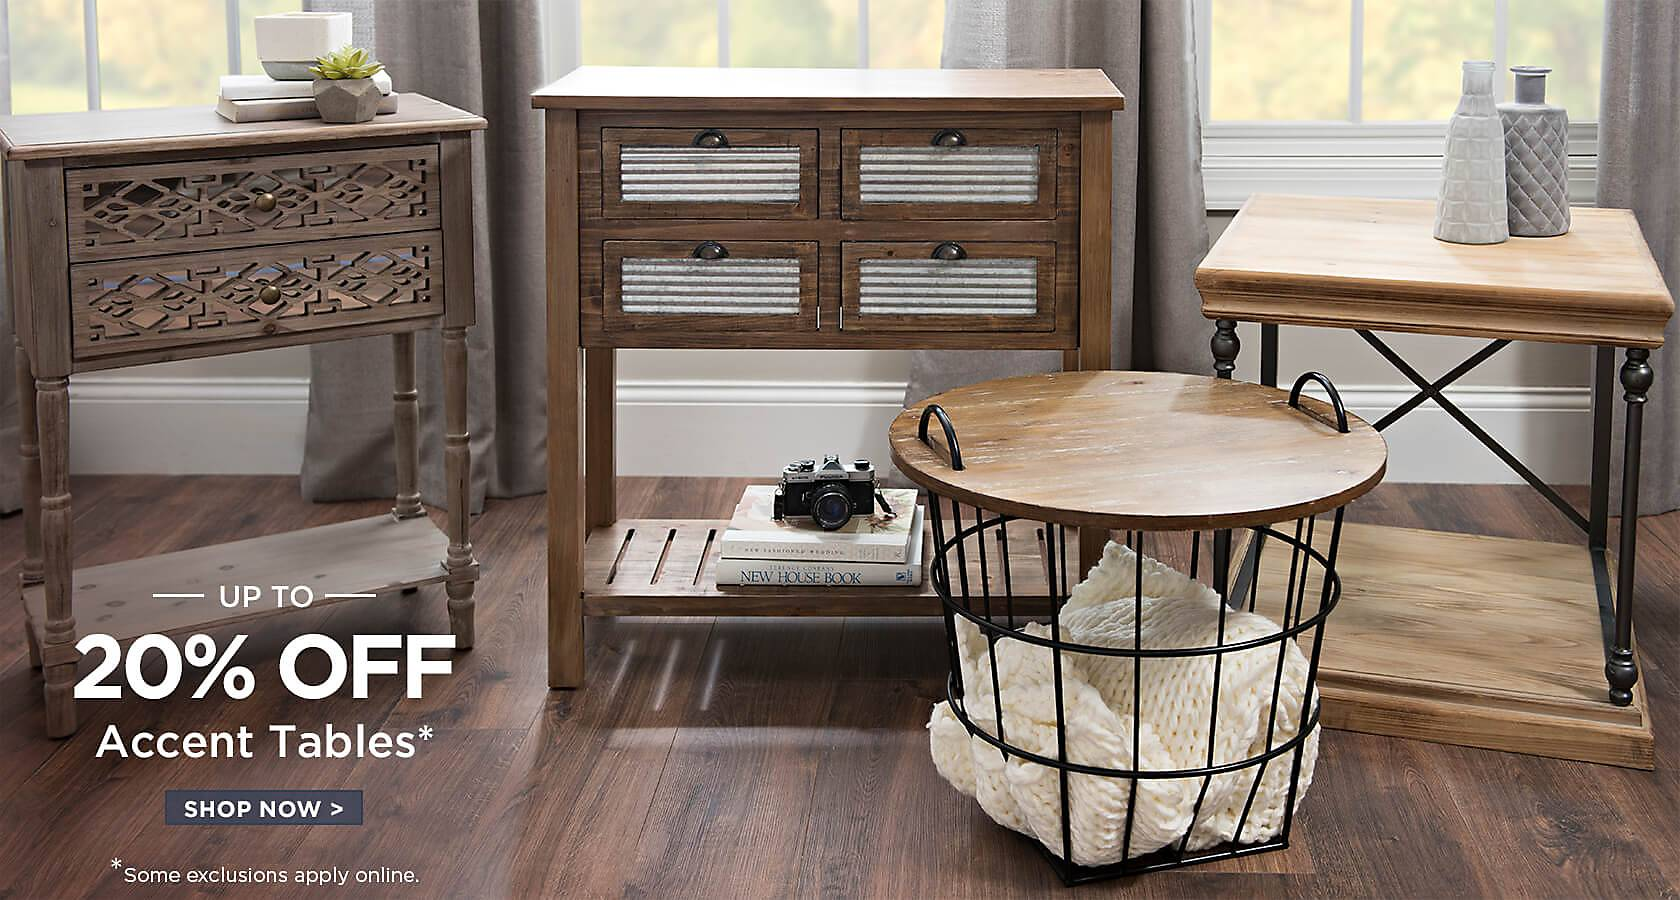 Up to 20% Off Accent Tables - Shop Now